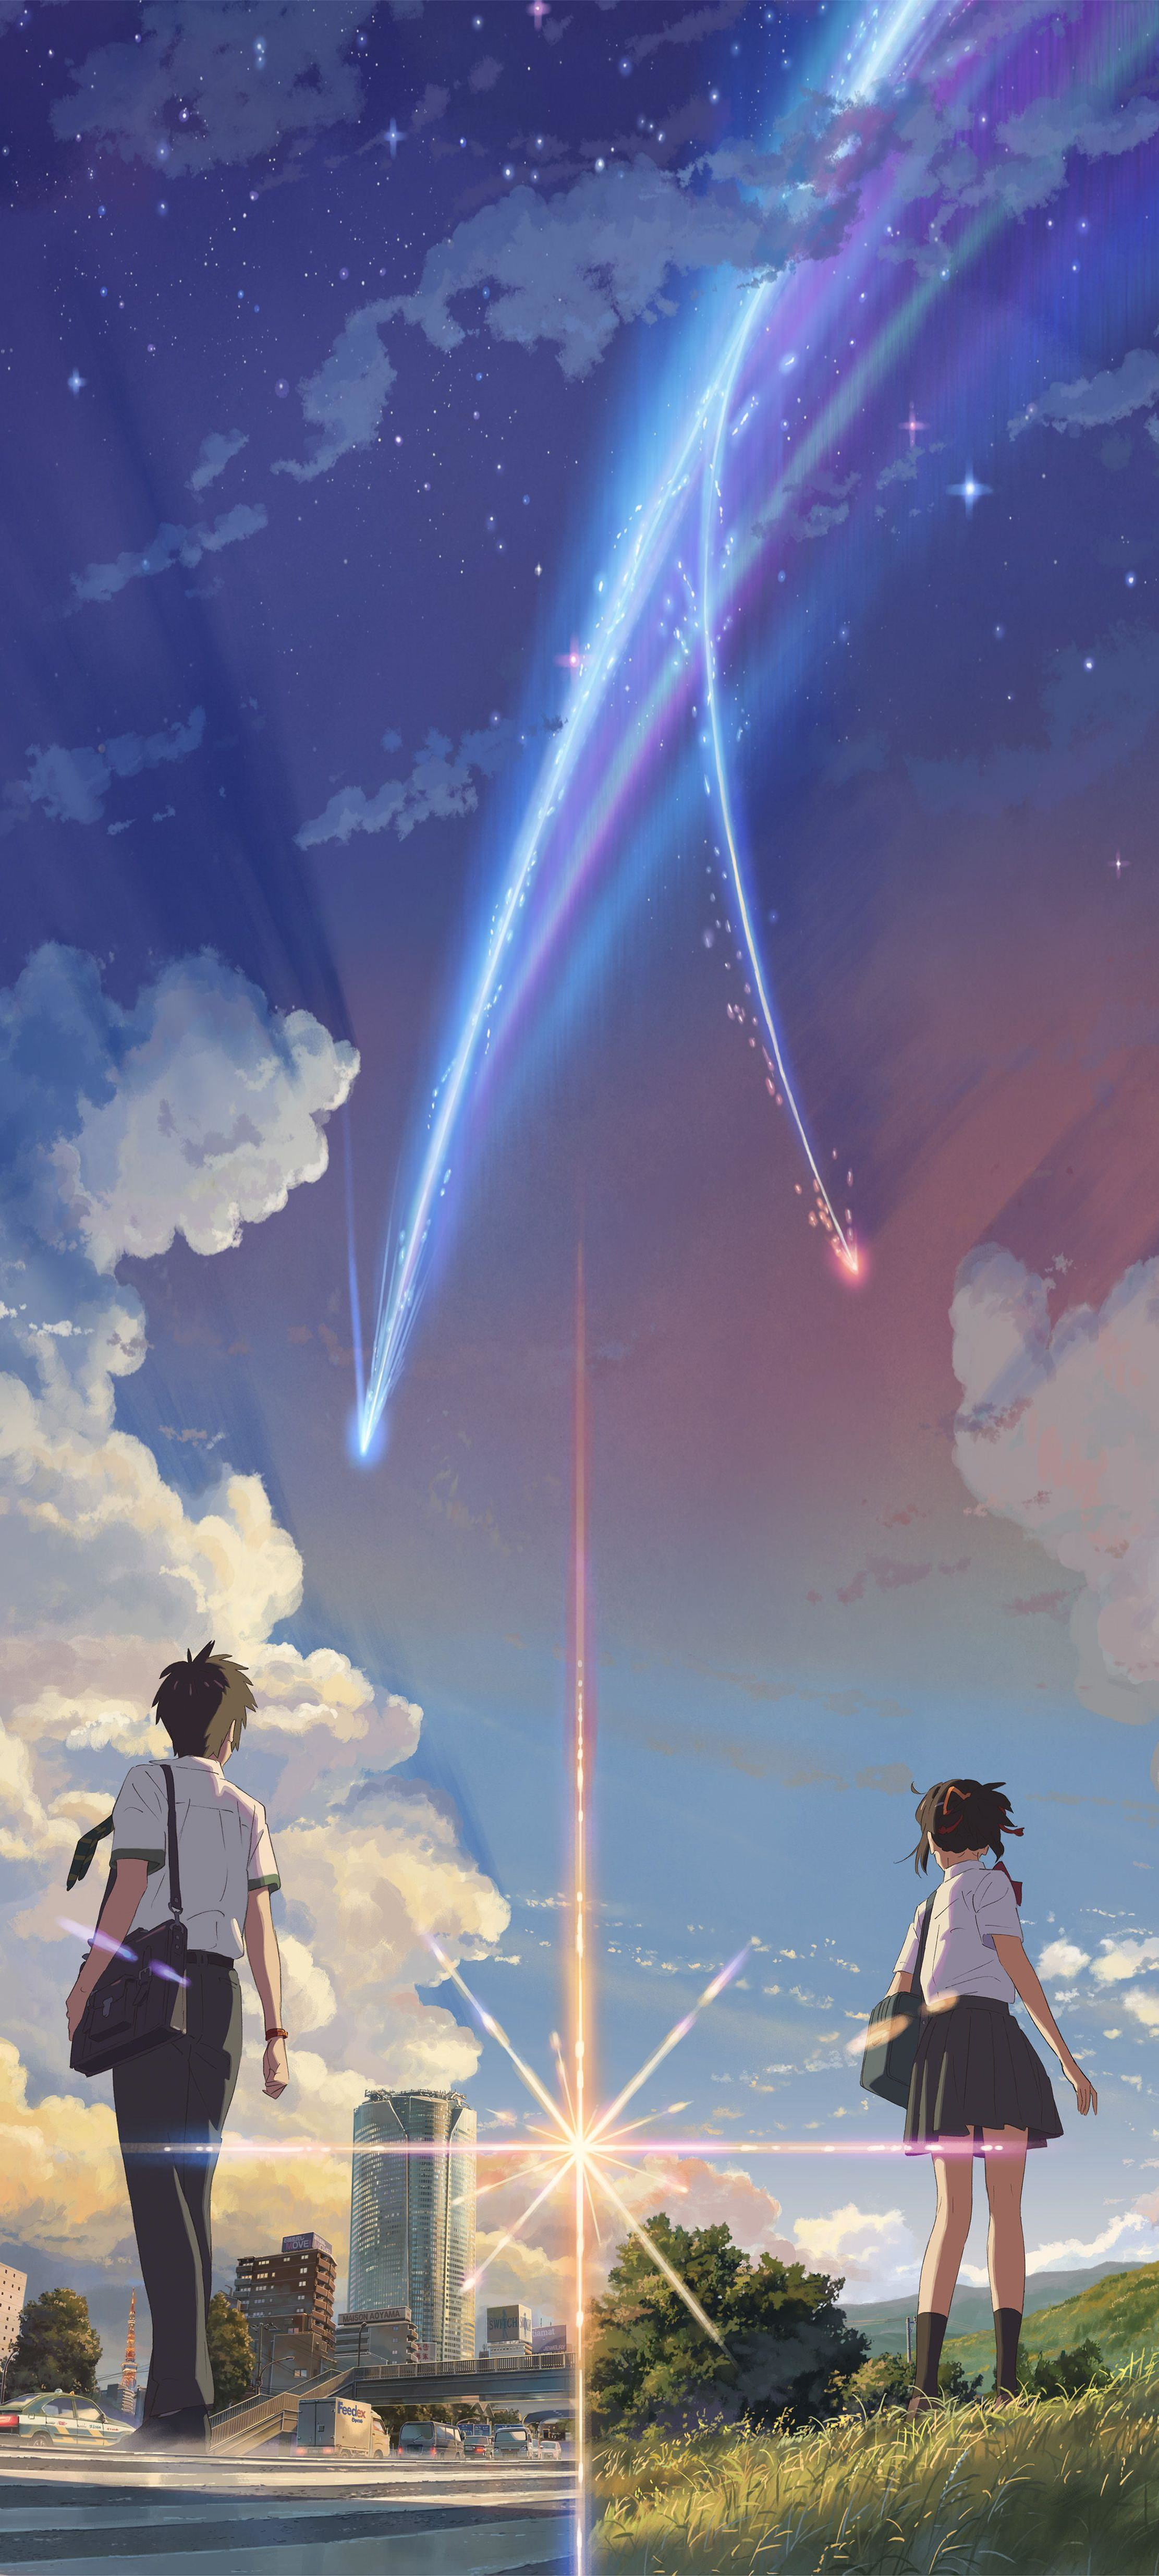 Your Name Ultra HD Wallpapers - Wallpaper Cave